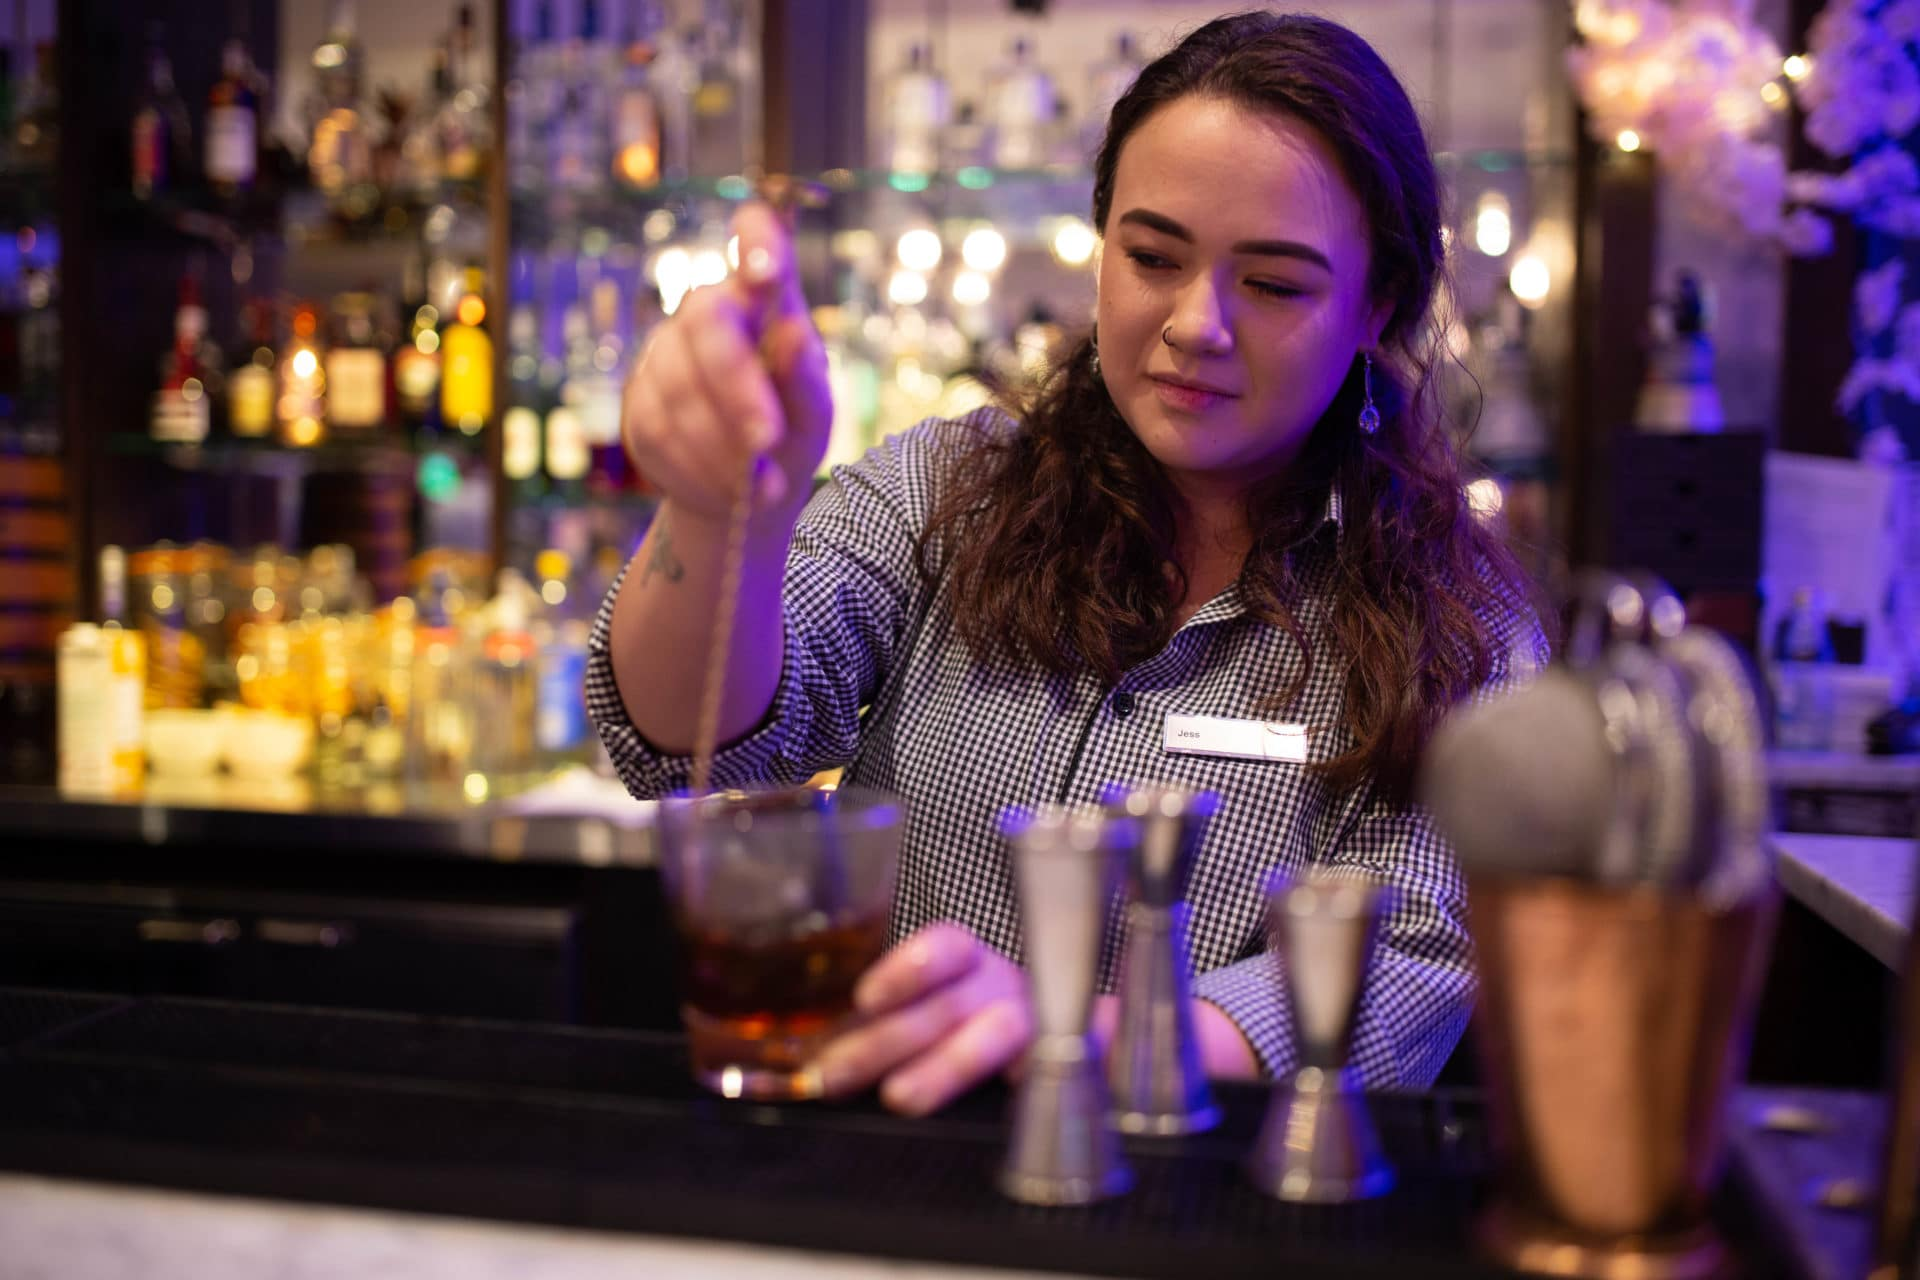 How to become a career bartender - Mixologist at the Hilton metropole Bar